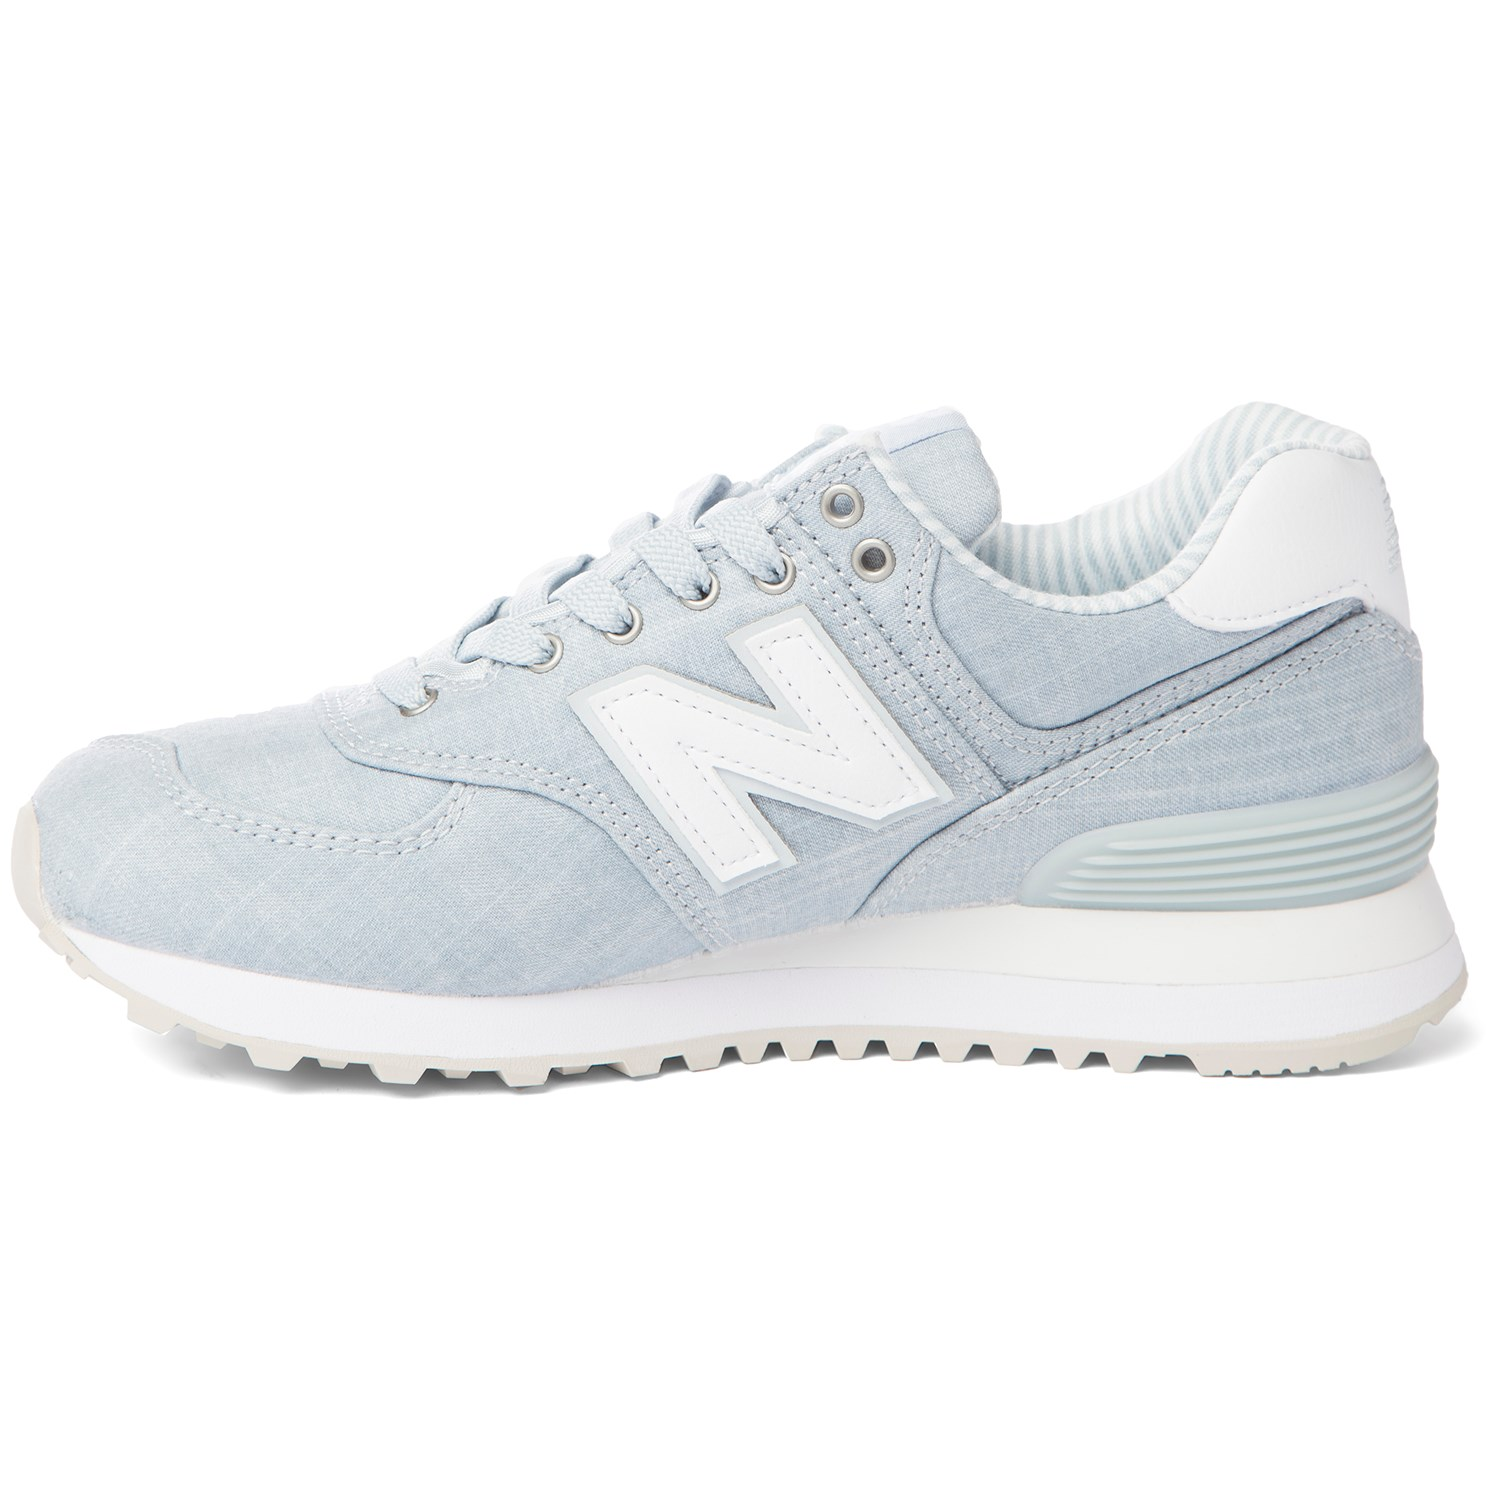 07ba6775ffe New Balance 574 Beach Chambray Shoes - Women's | evo